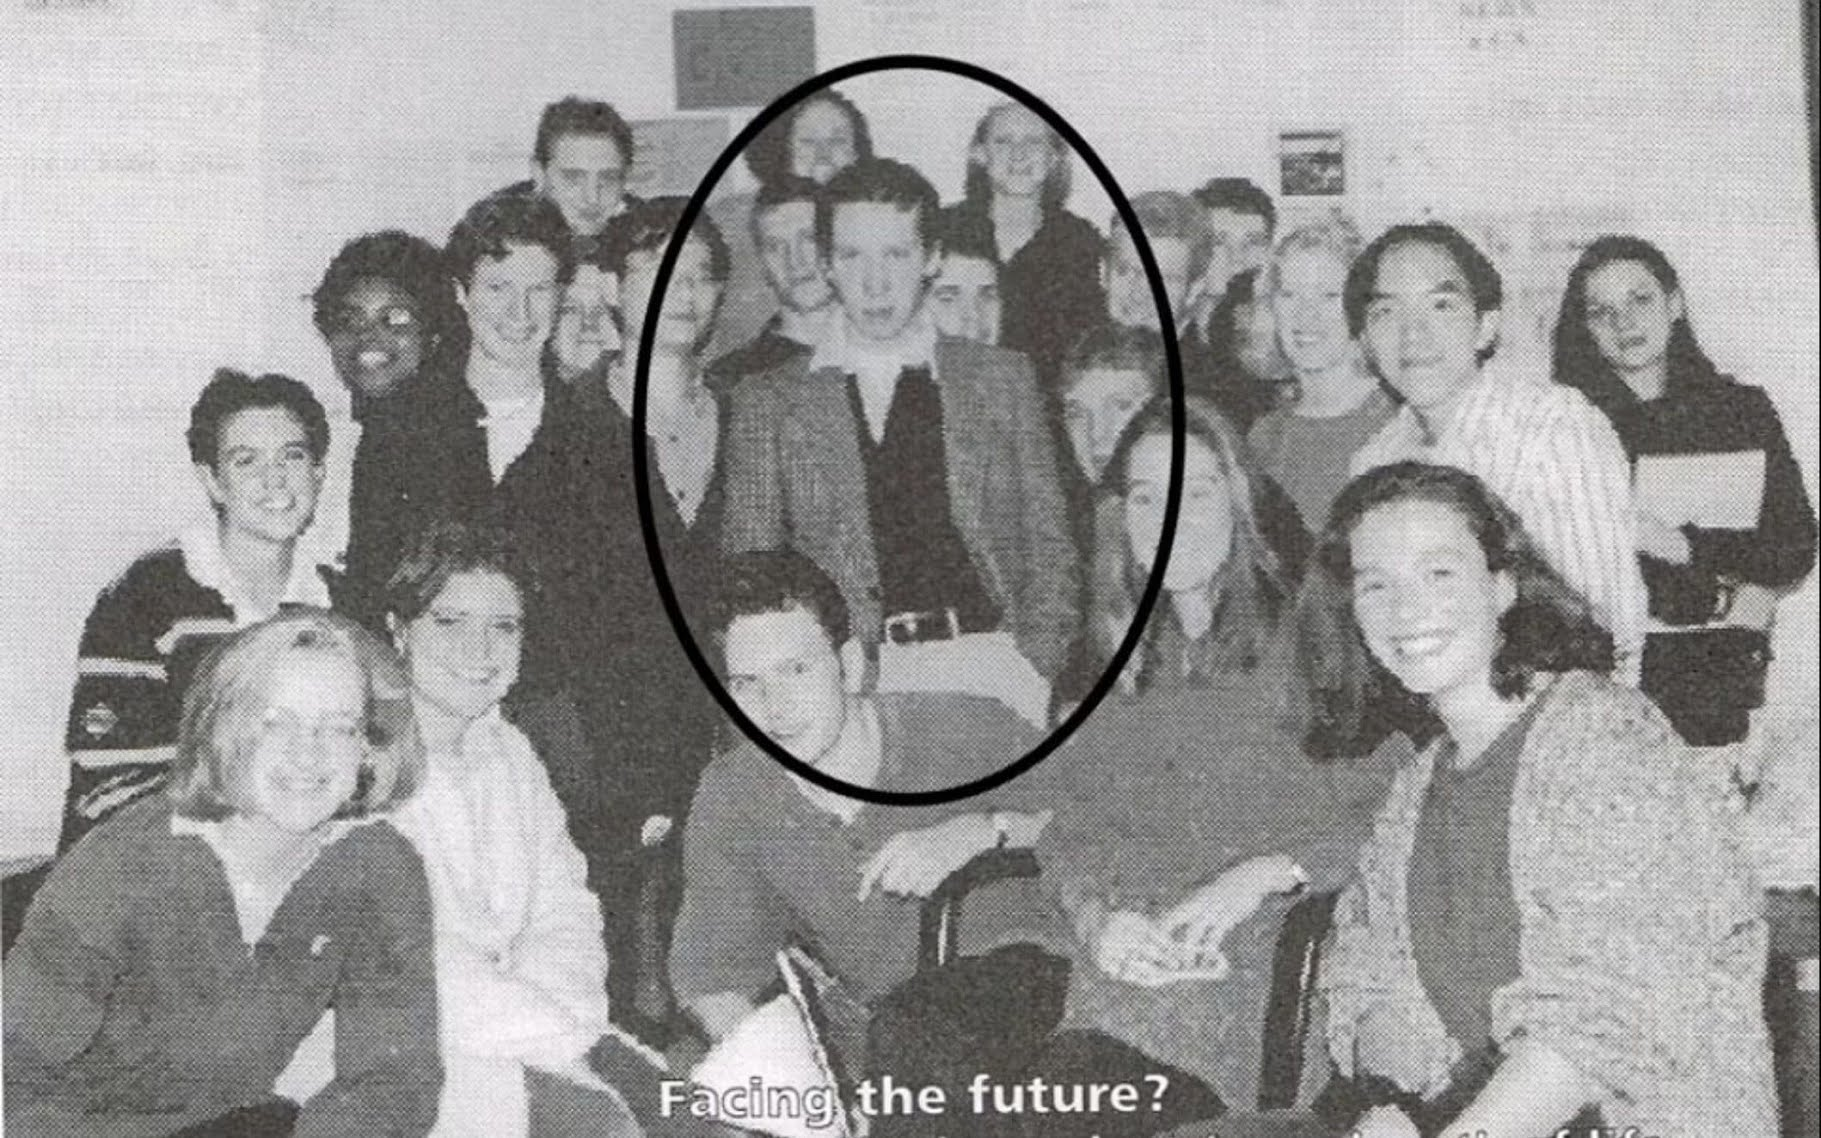 Matt Hancock (circled) and his future 'lover' is Gina Coladangelo (believed to be far right) are pictured at the launch of a student radio station in a newly unearthed photo